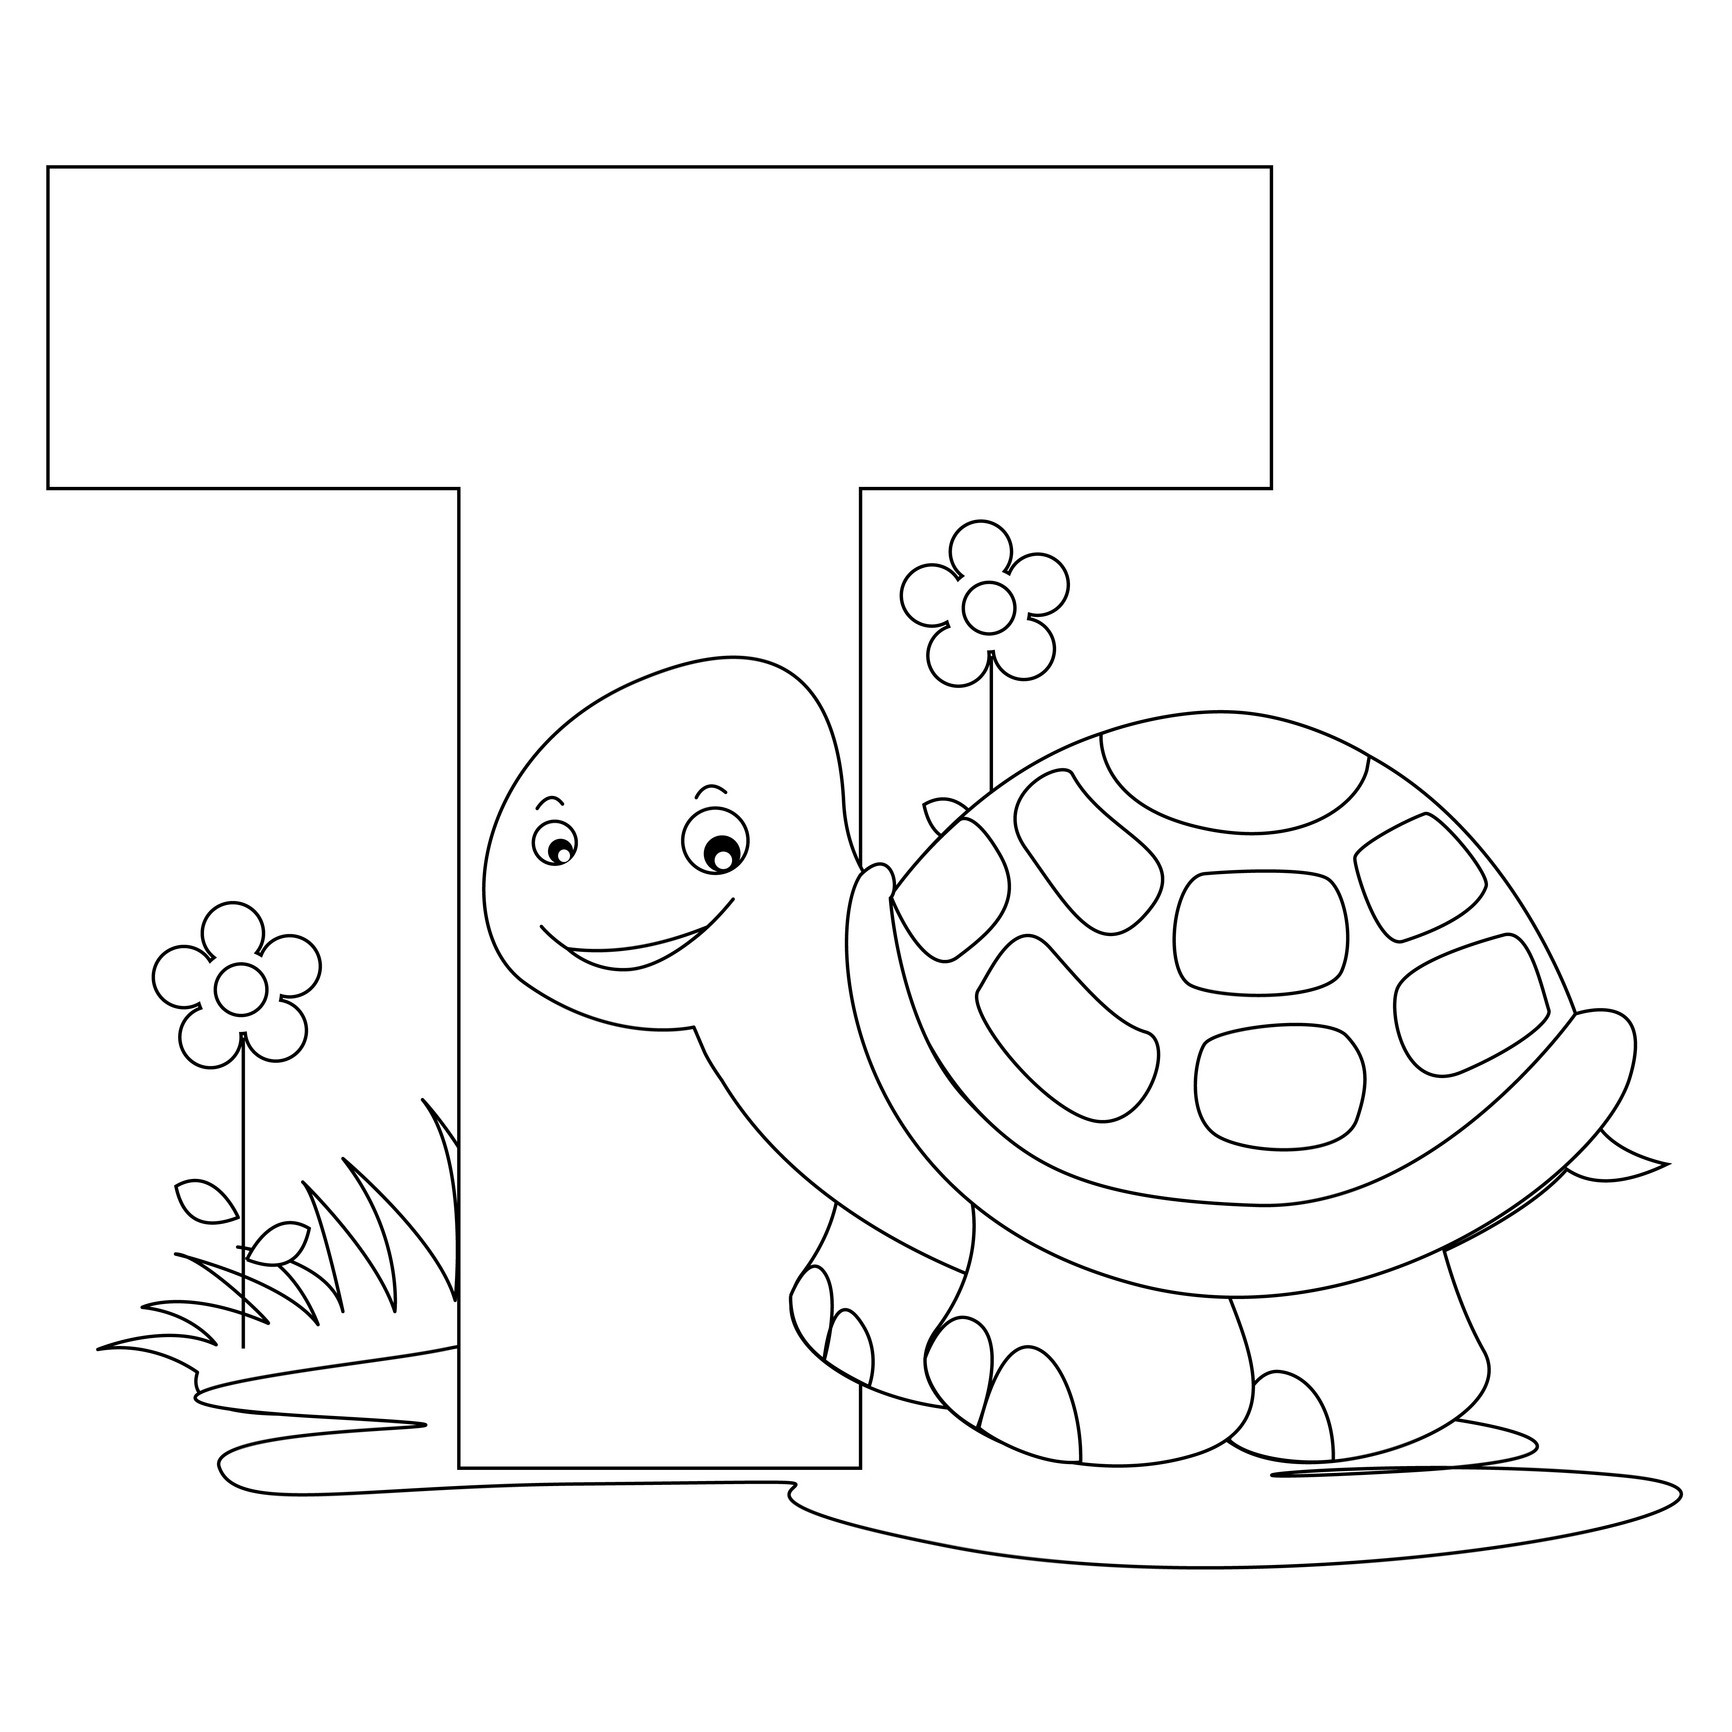 Free Printable Alphabet Coloring Pages For Kids Best Coloring Pages For Printable